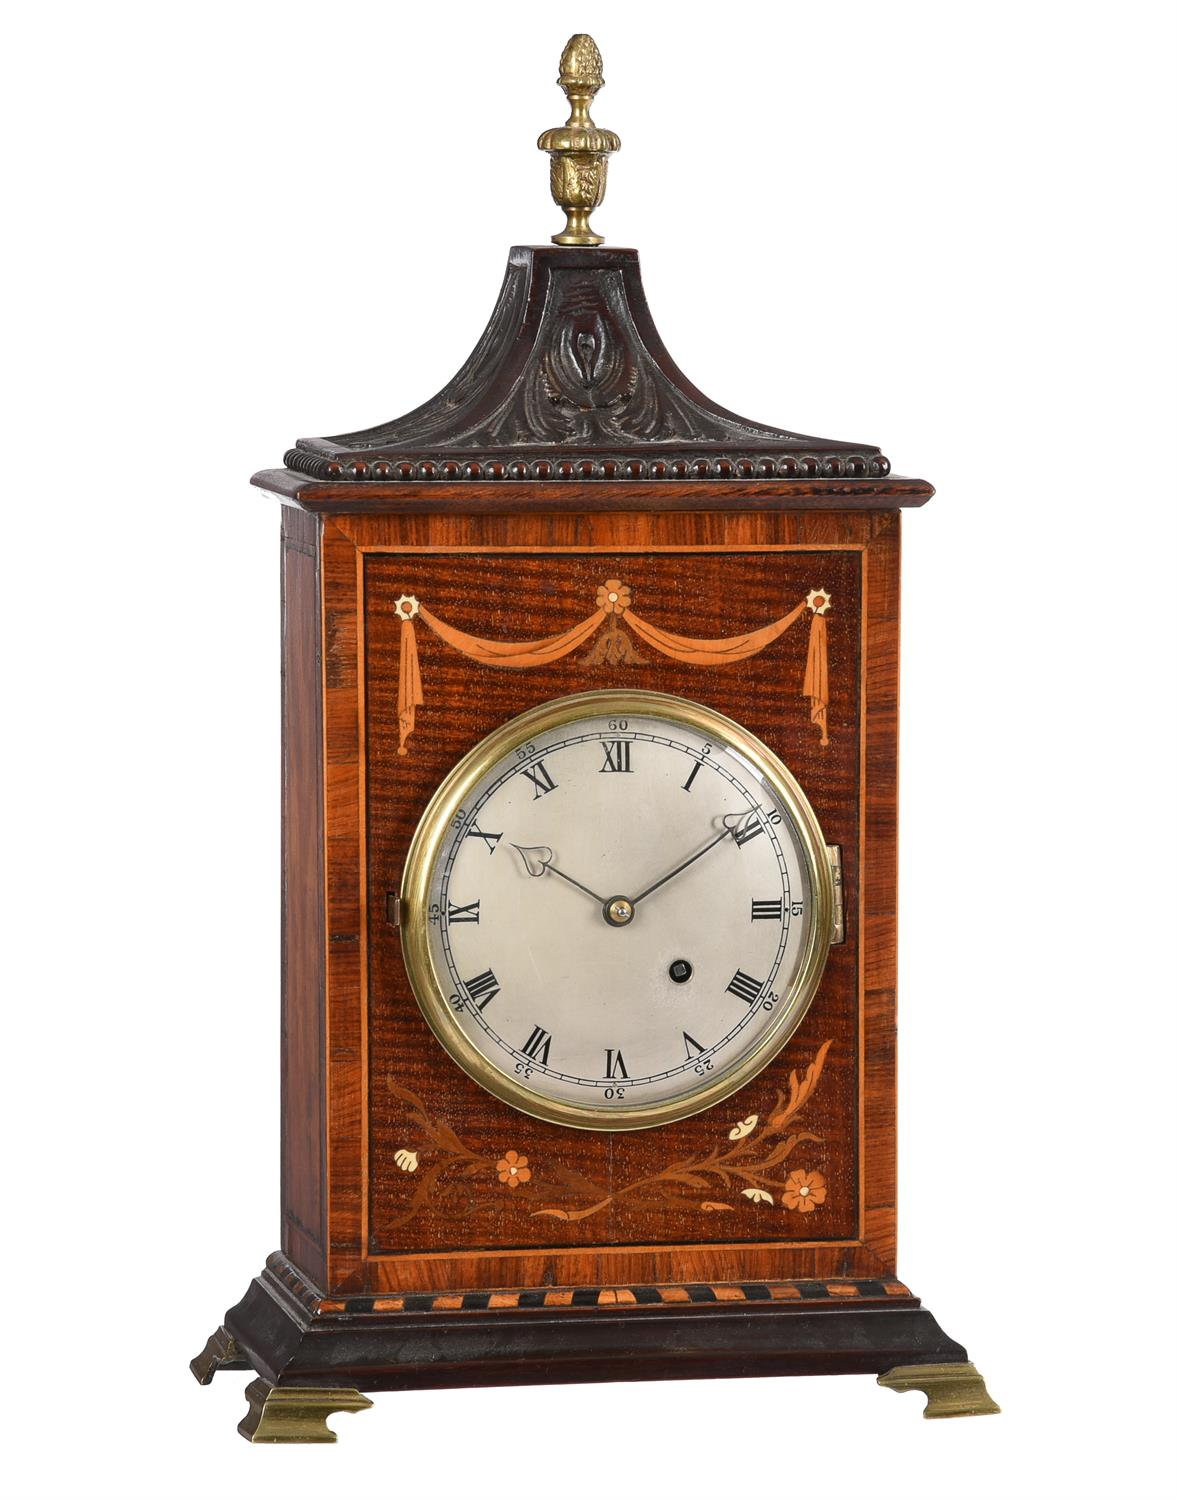 Y A English carved and inlaid mahogany mantel timepiece